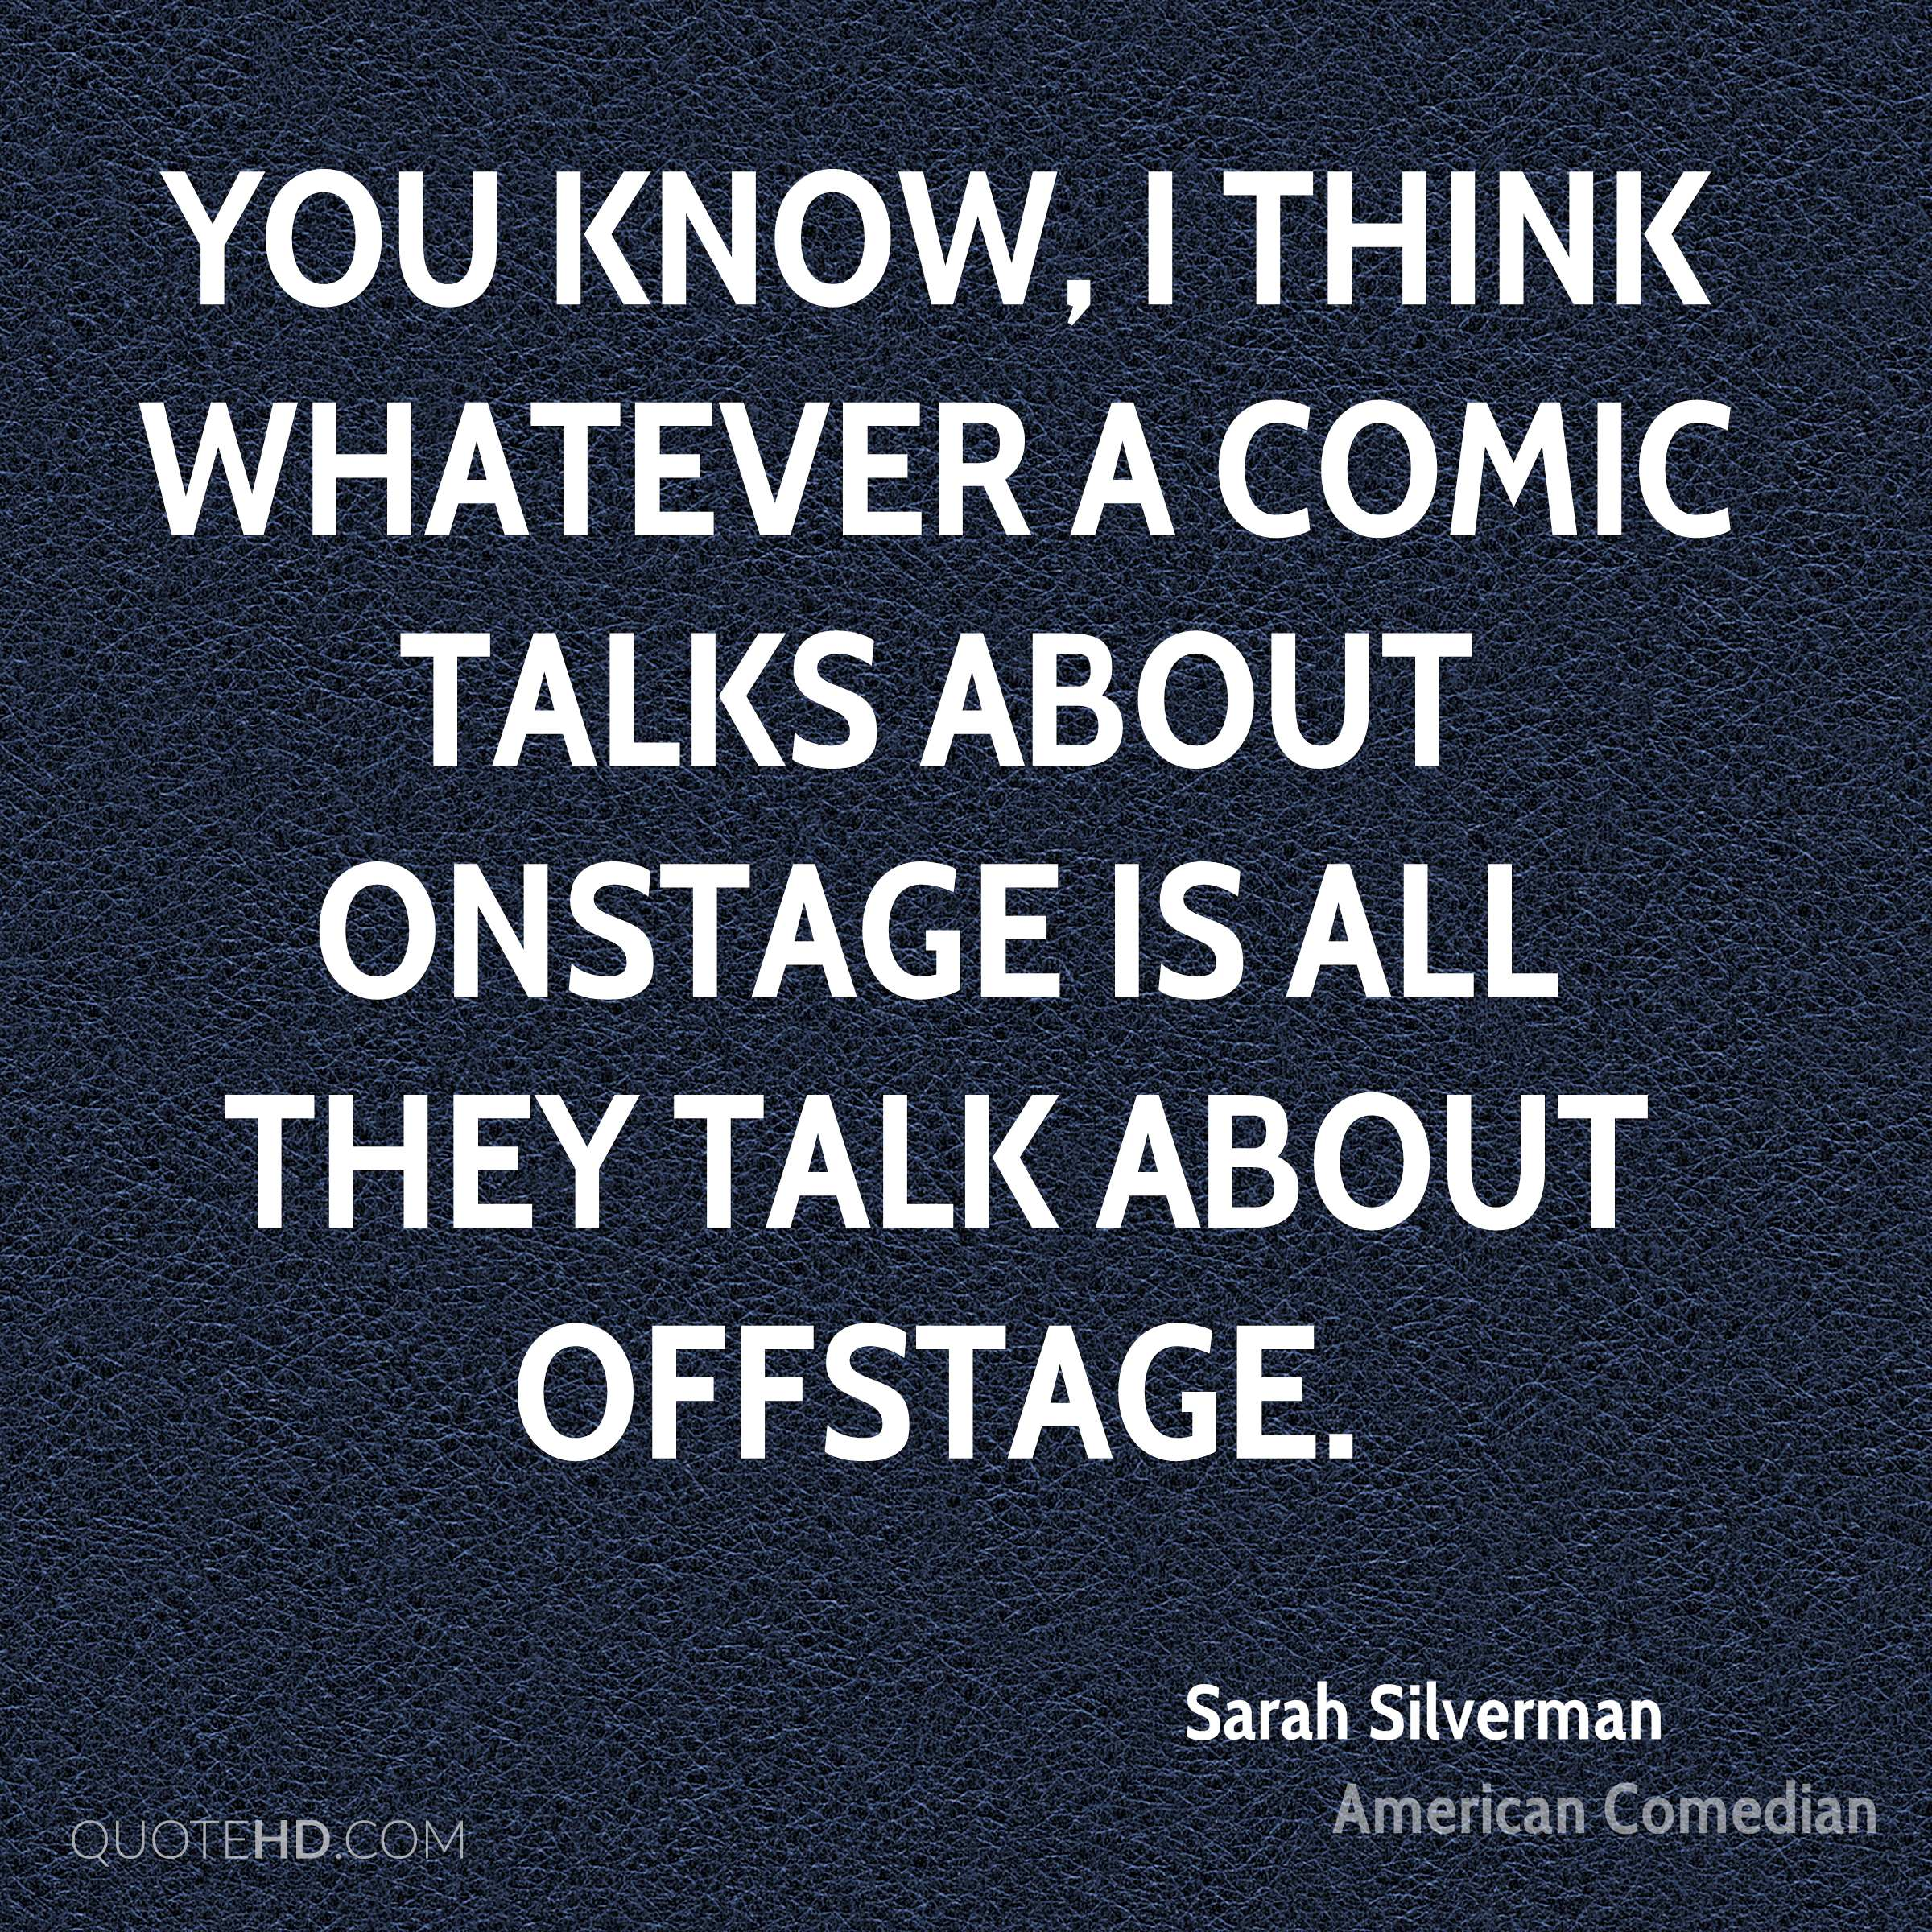 You know, I think whatever a comic talks about onstage is all they talk about offstage.